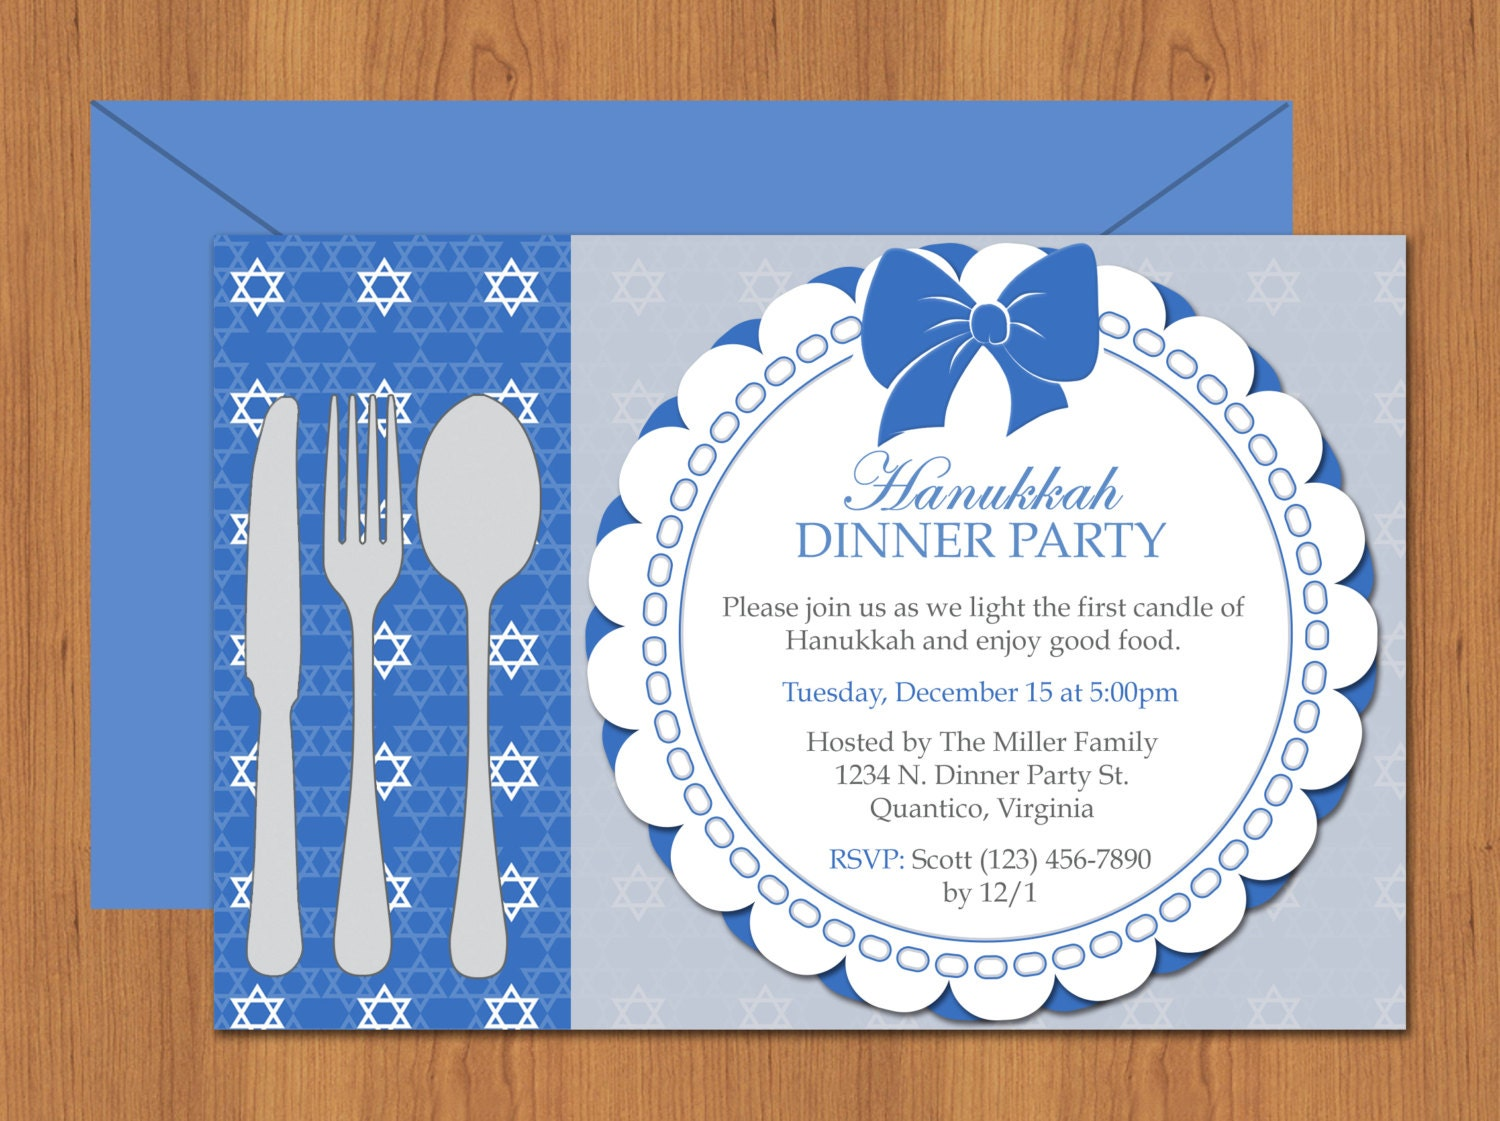 hanukkah dinner party invitation editable template. Black Bedroom Furniture Sets. Home Design Ideas